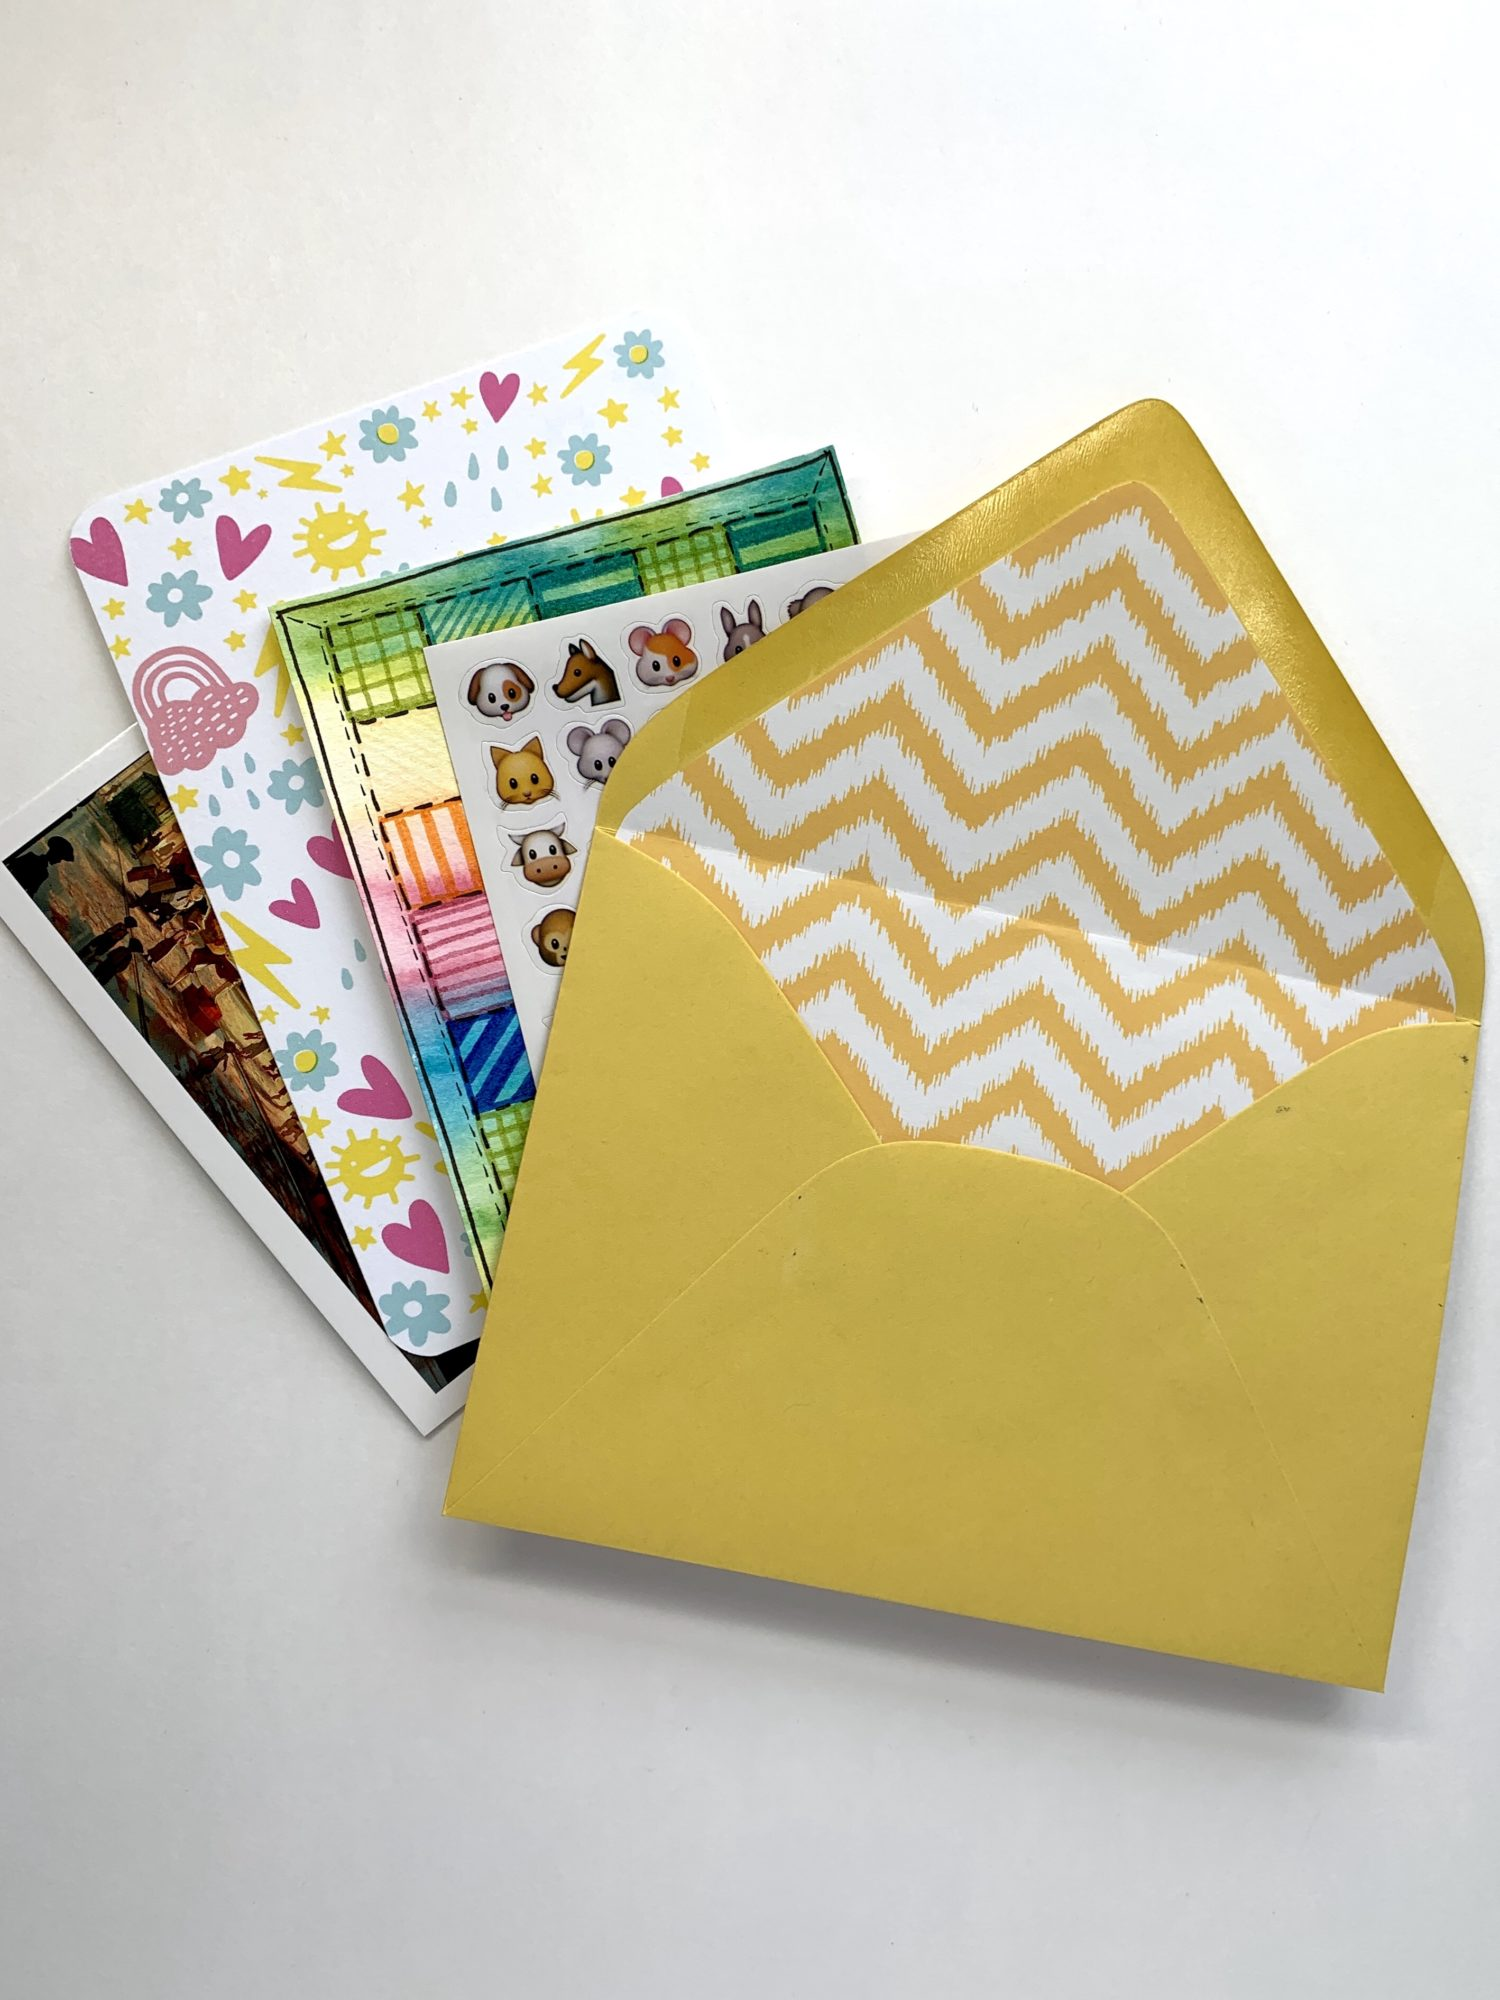 Spice up your happy mail with this envelope liner tutorial by @lepereletters. @tombowusa #happymailideas #envelopeliner